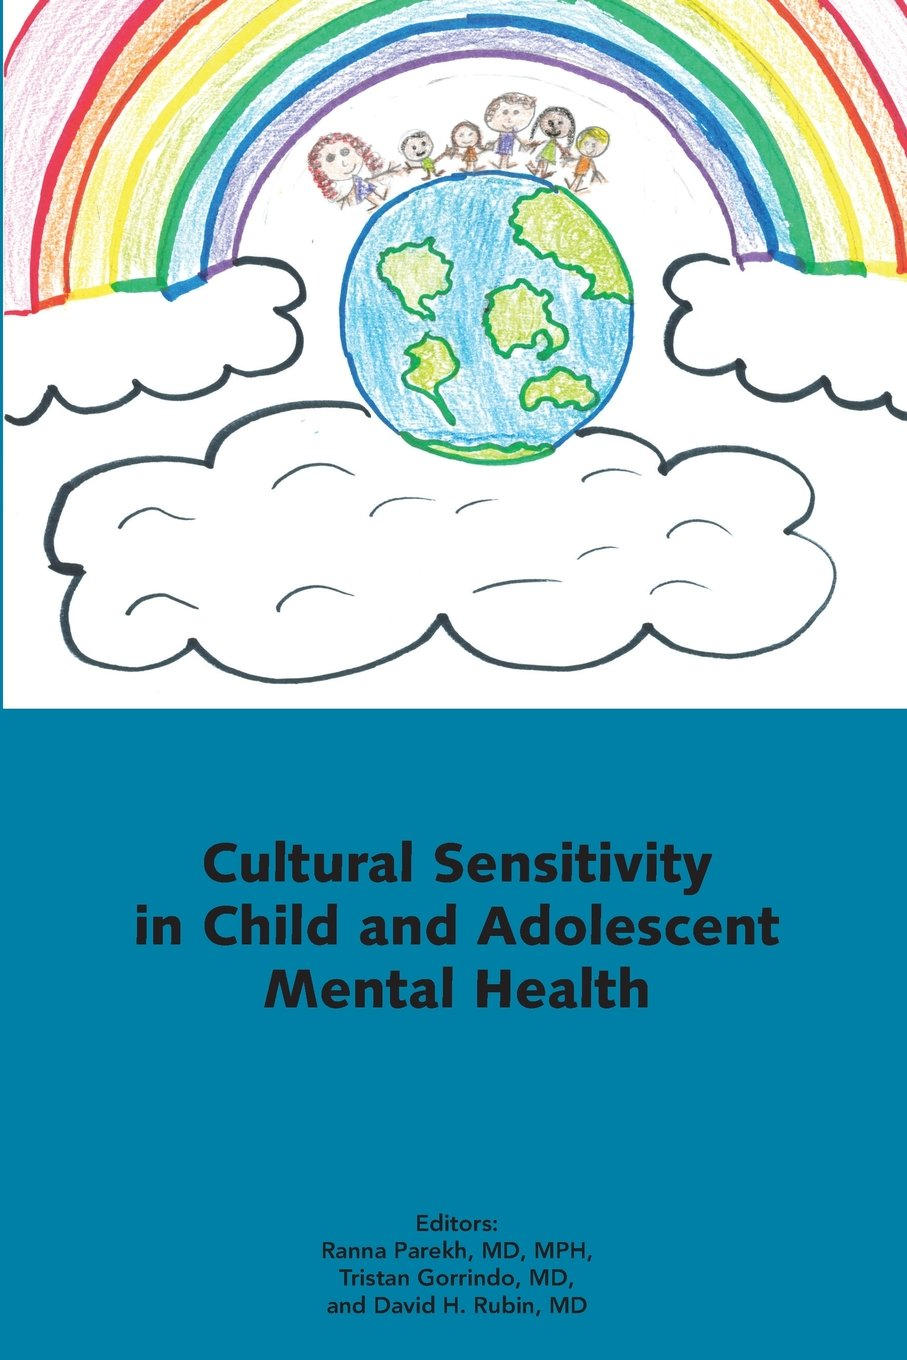 Cultural Sensitivity in Child and Adolescent Mental Health Cover for Publications